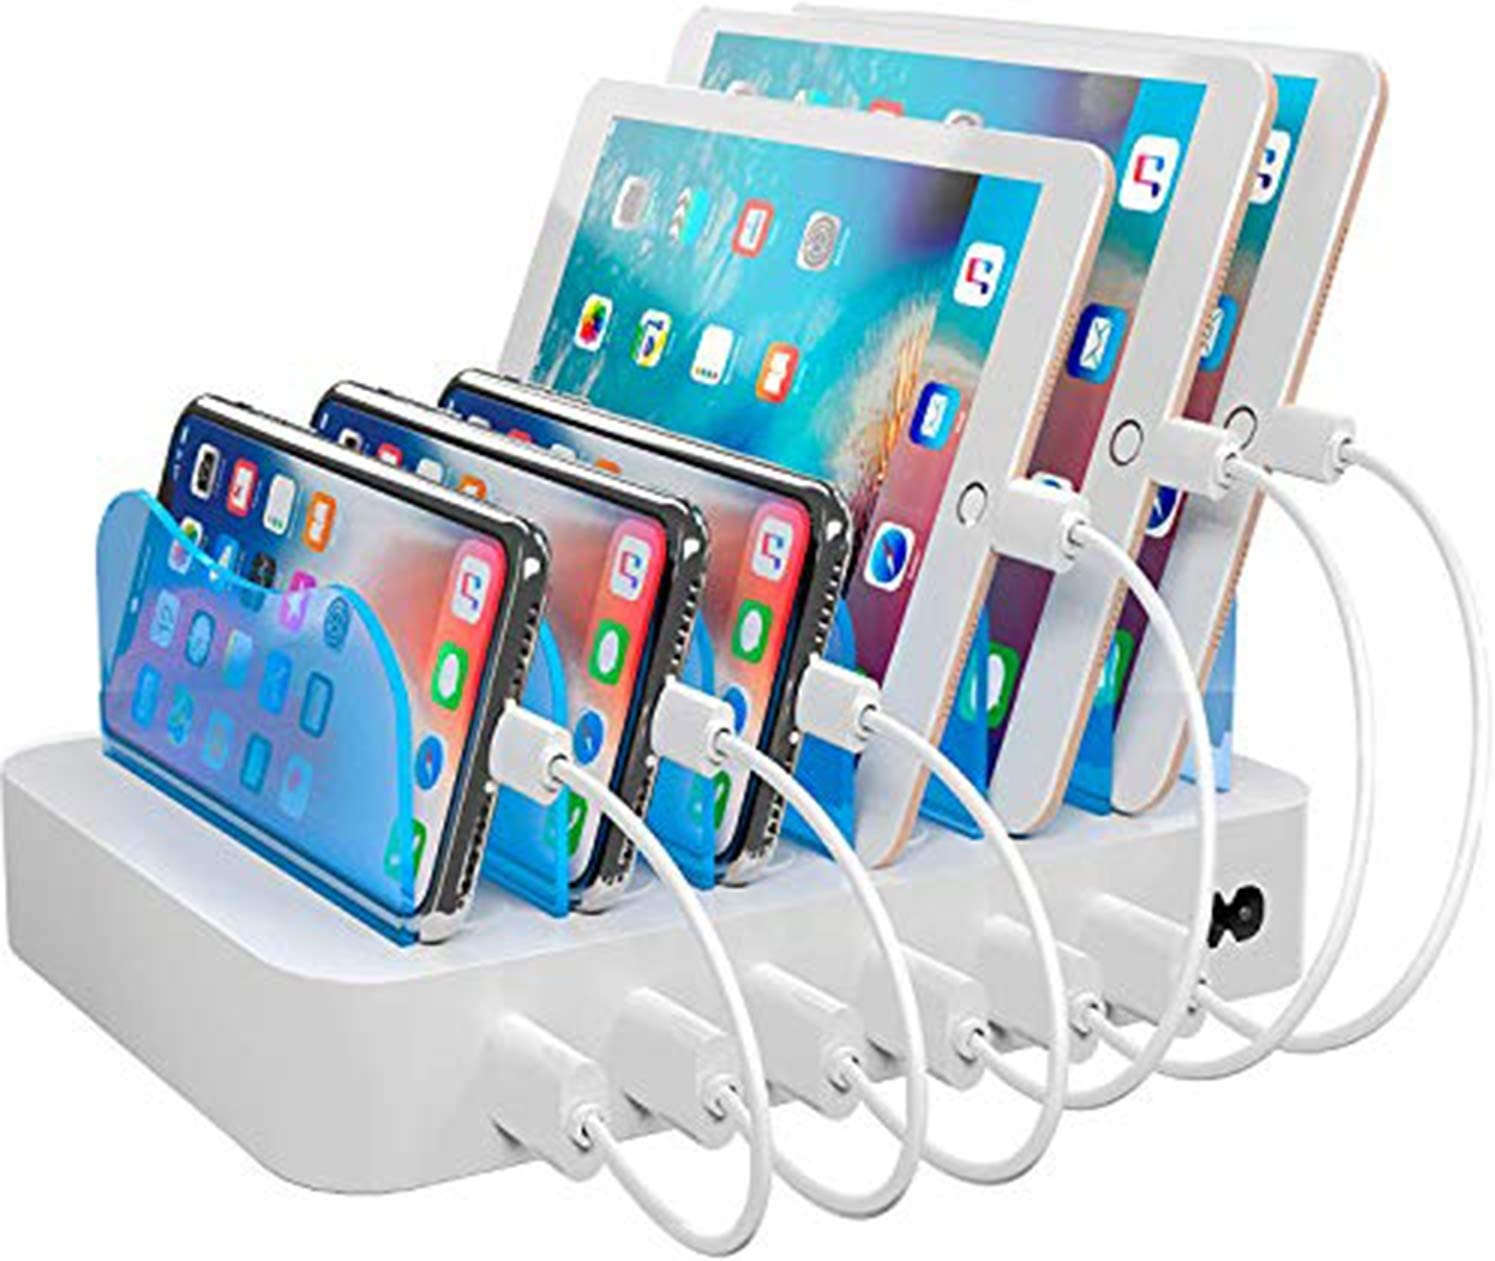 Hercules Tuff Charging Station for Multiple Devices, with 6 USB Fast Ports and 6 Short USB Cables, White